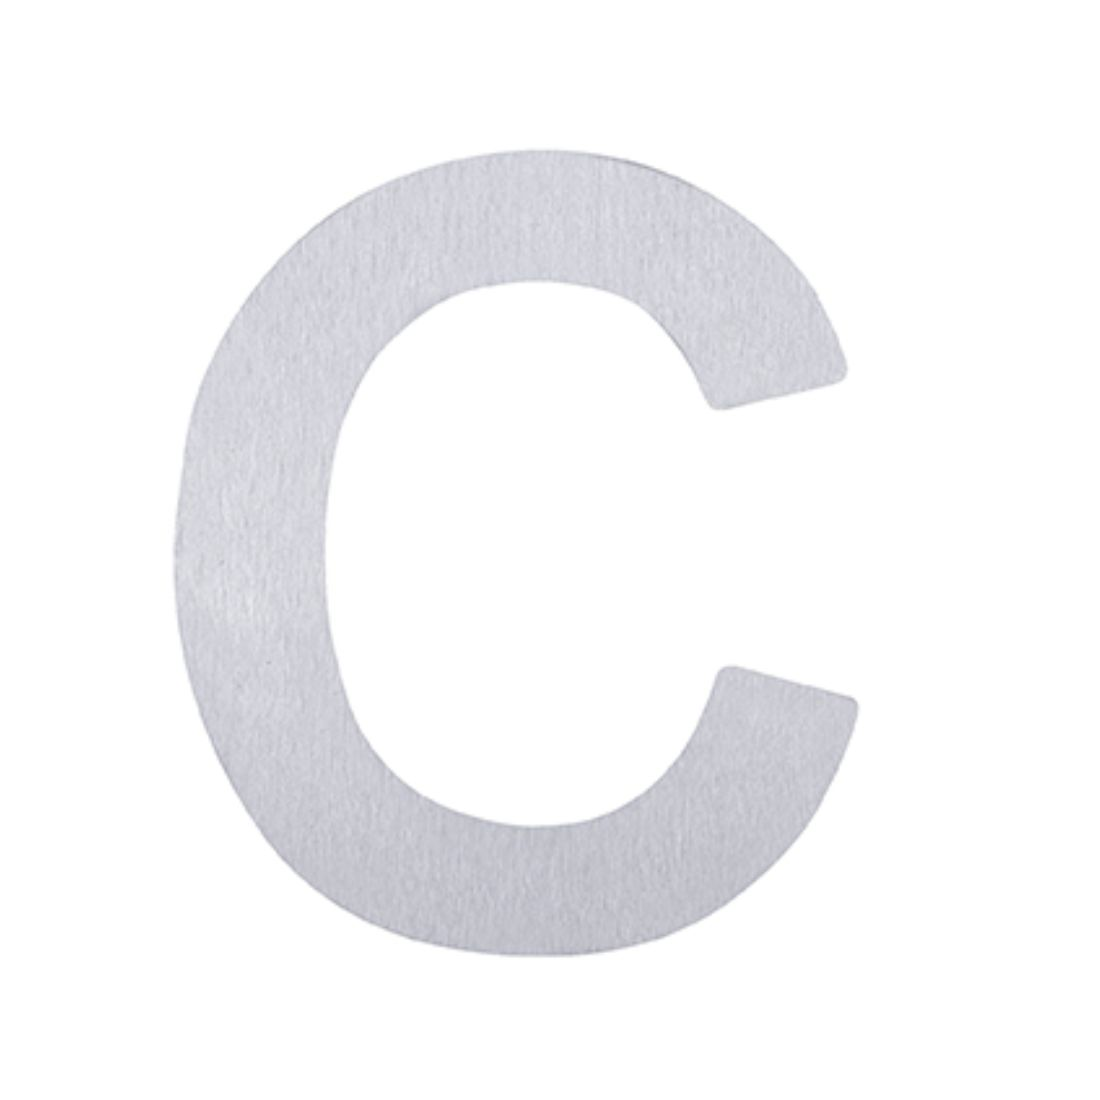 Adhesive Letter C Stainless Steel 75mm 5371-C-SS